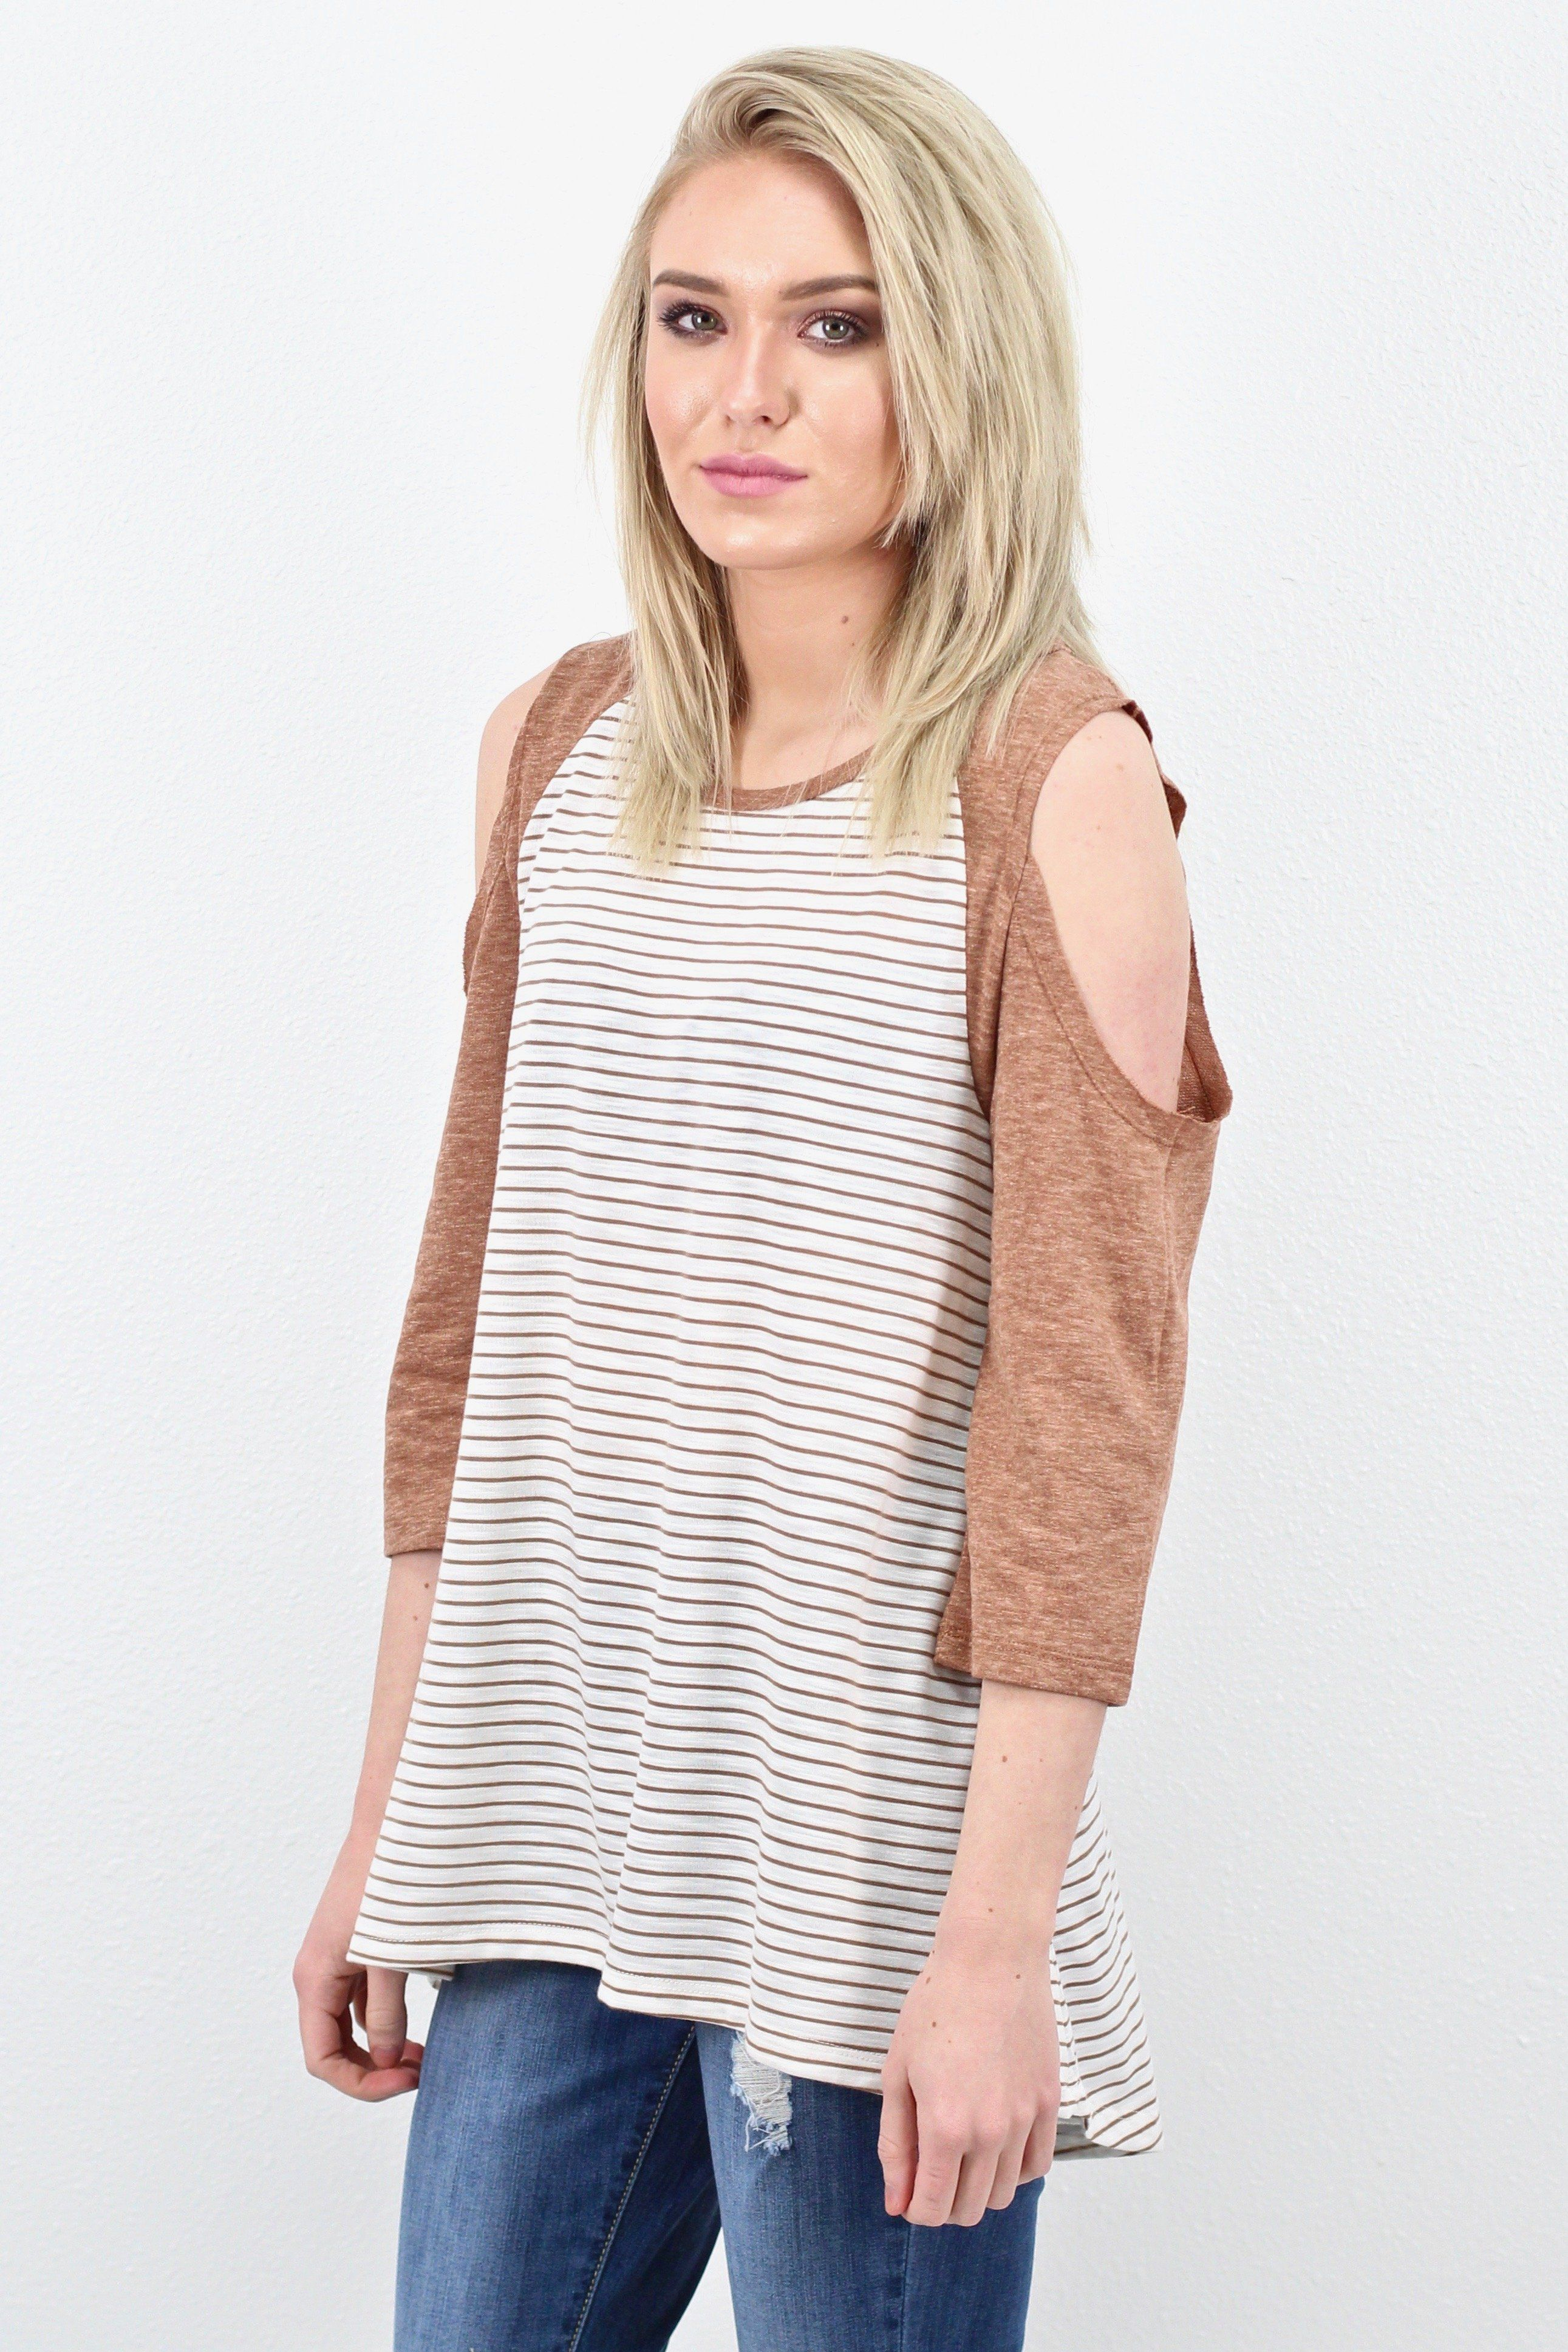 91abba28523e57 Girl Next Door Striped Open Shoulder  Clay  EXTENDED SIZES ...